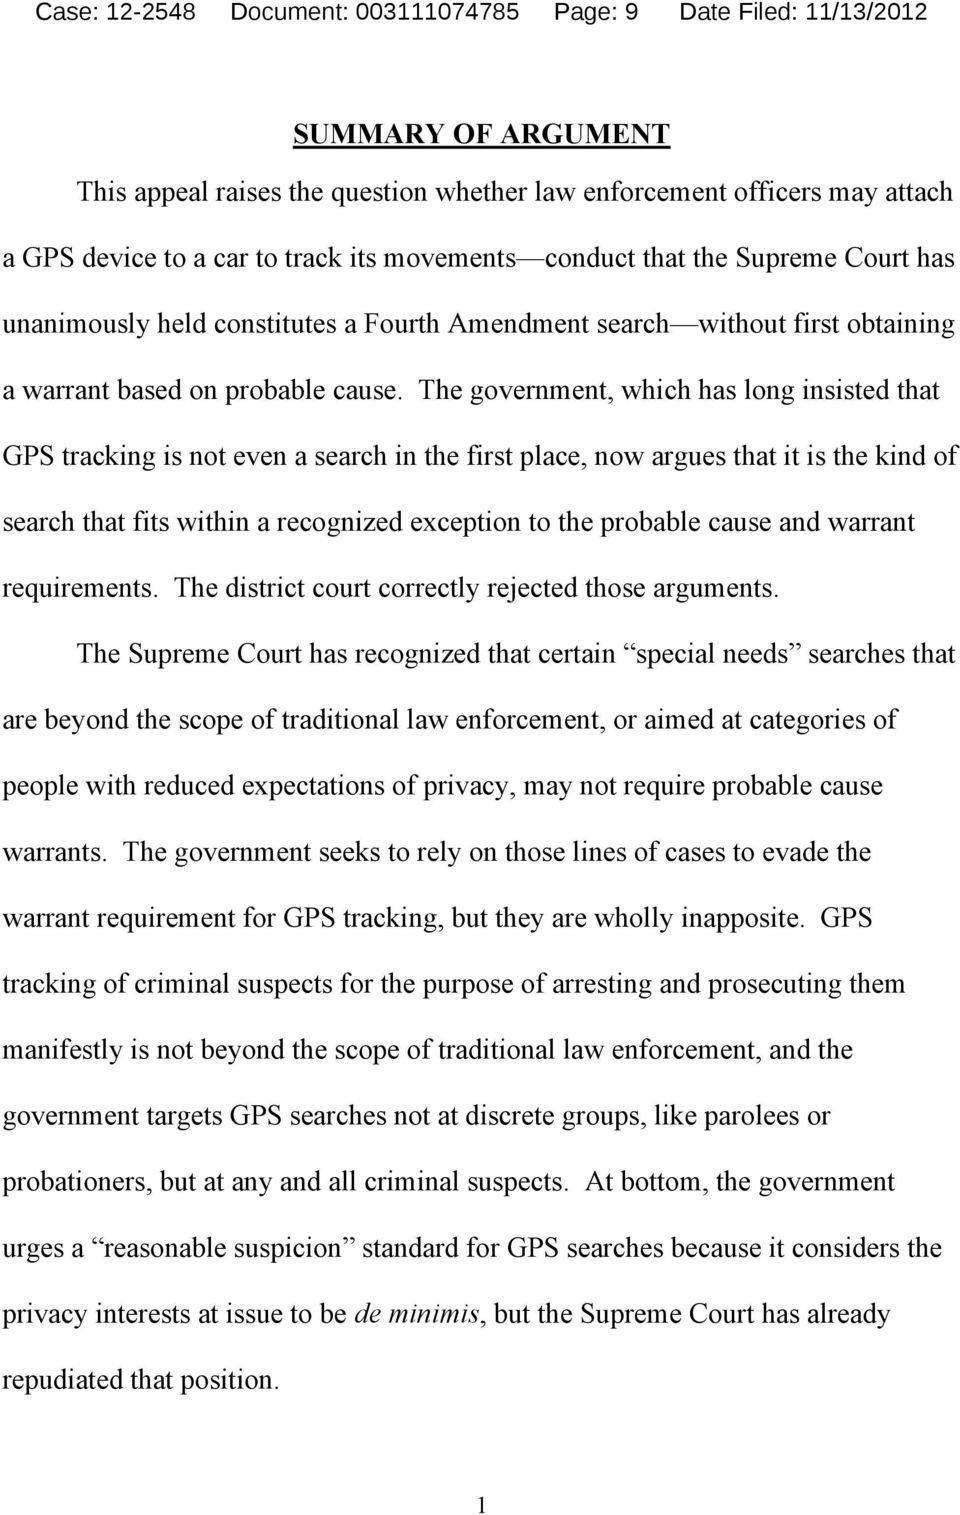 Fourth Amendment search without first obtaining a warrant based on probable cause.